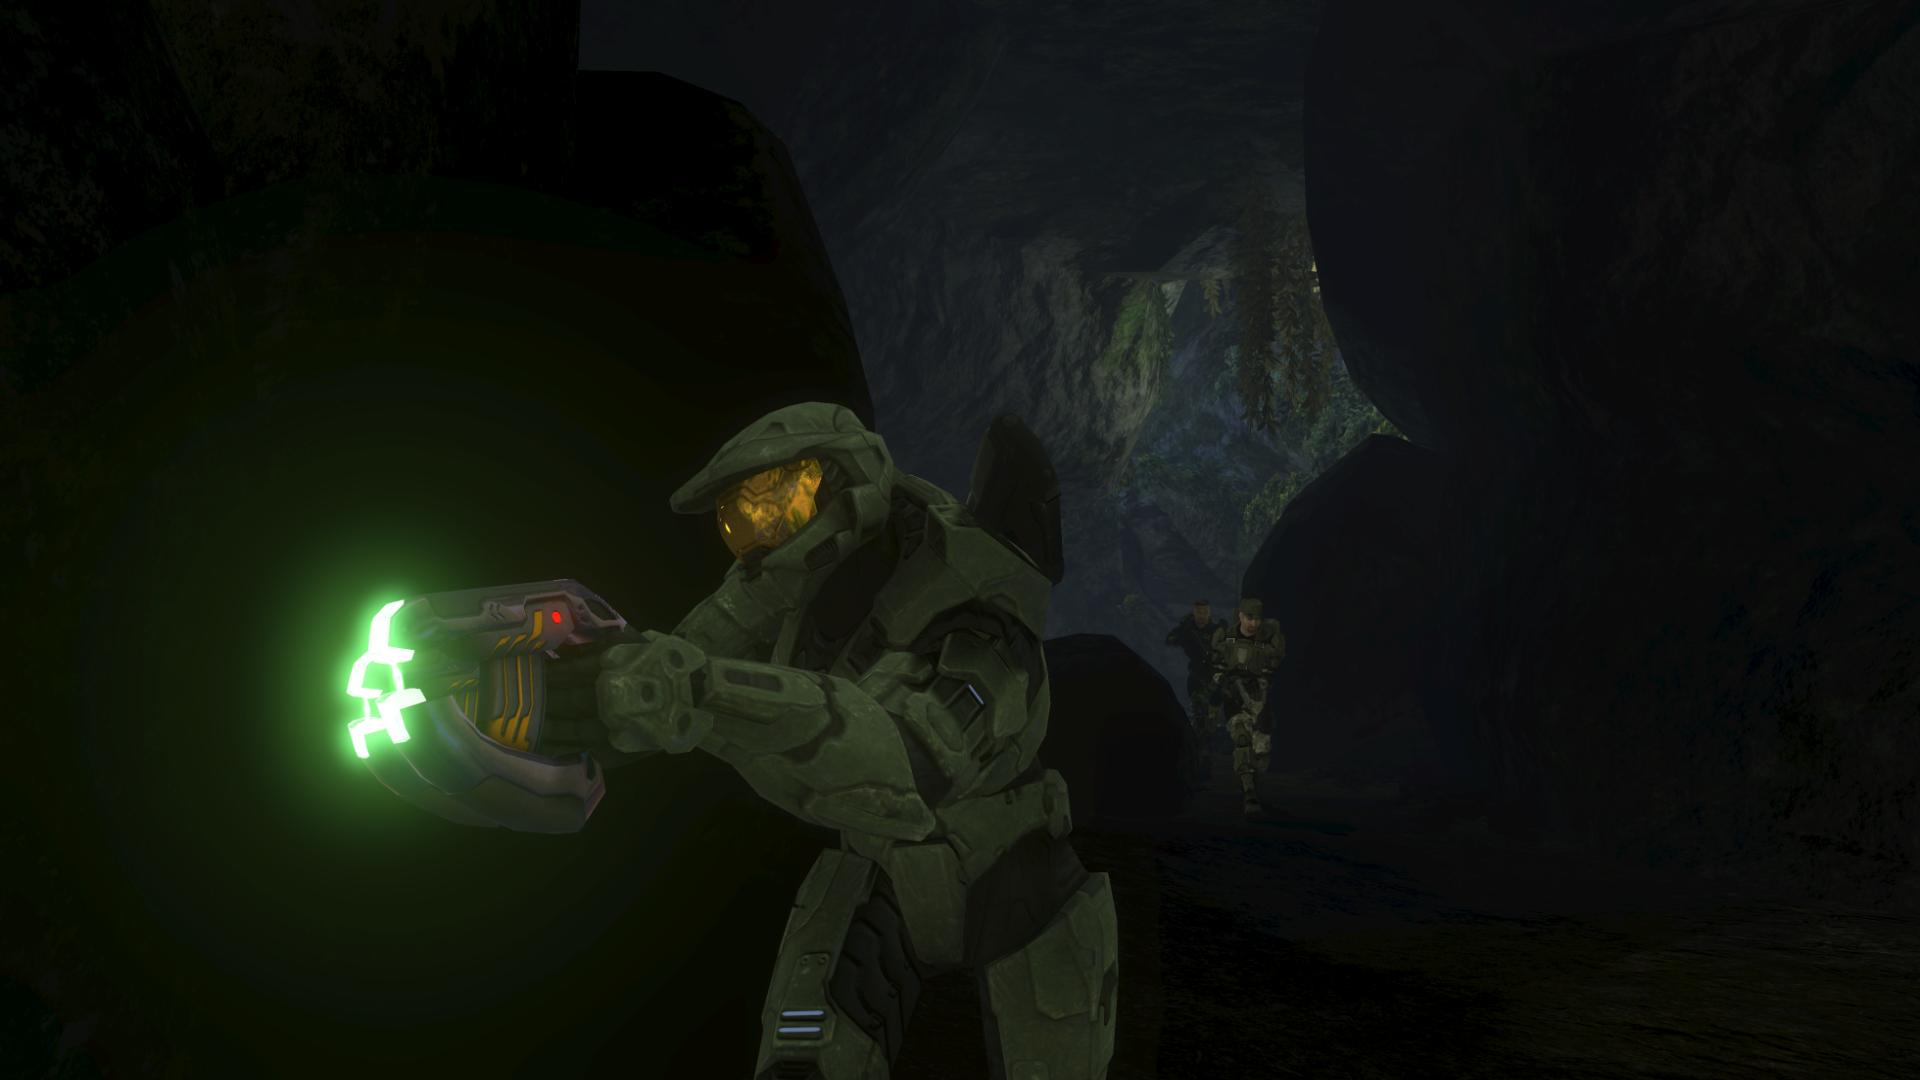 1521489438 c62cd029df o Halo 3: Darker Caves